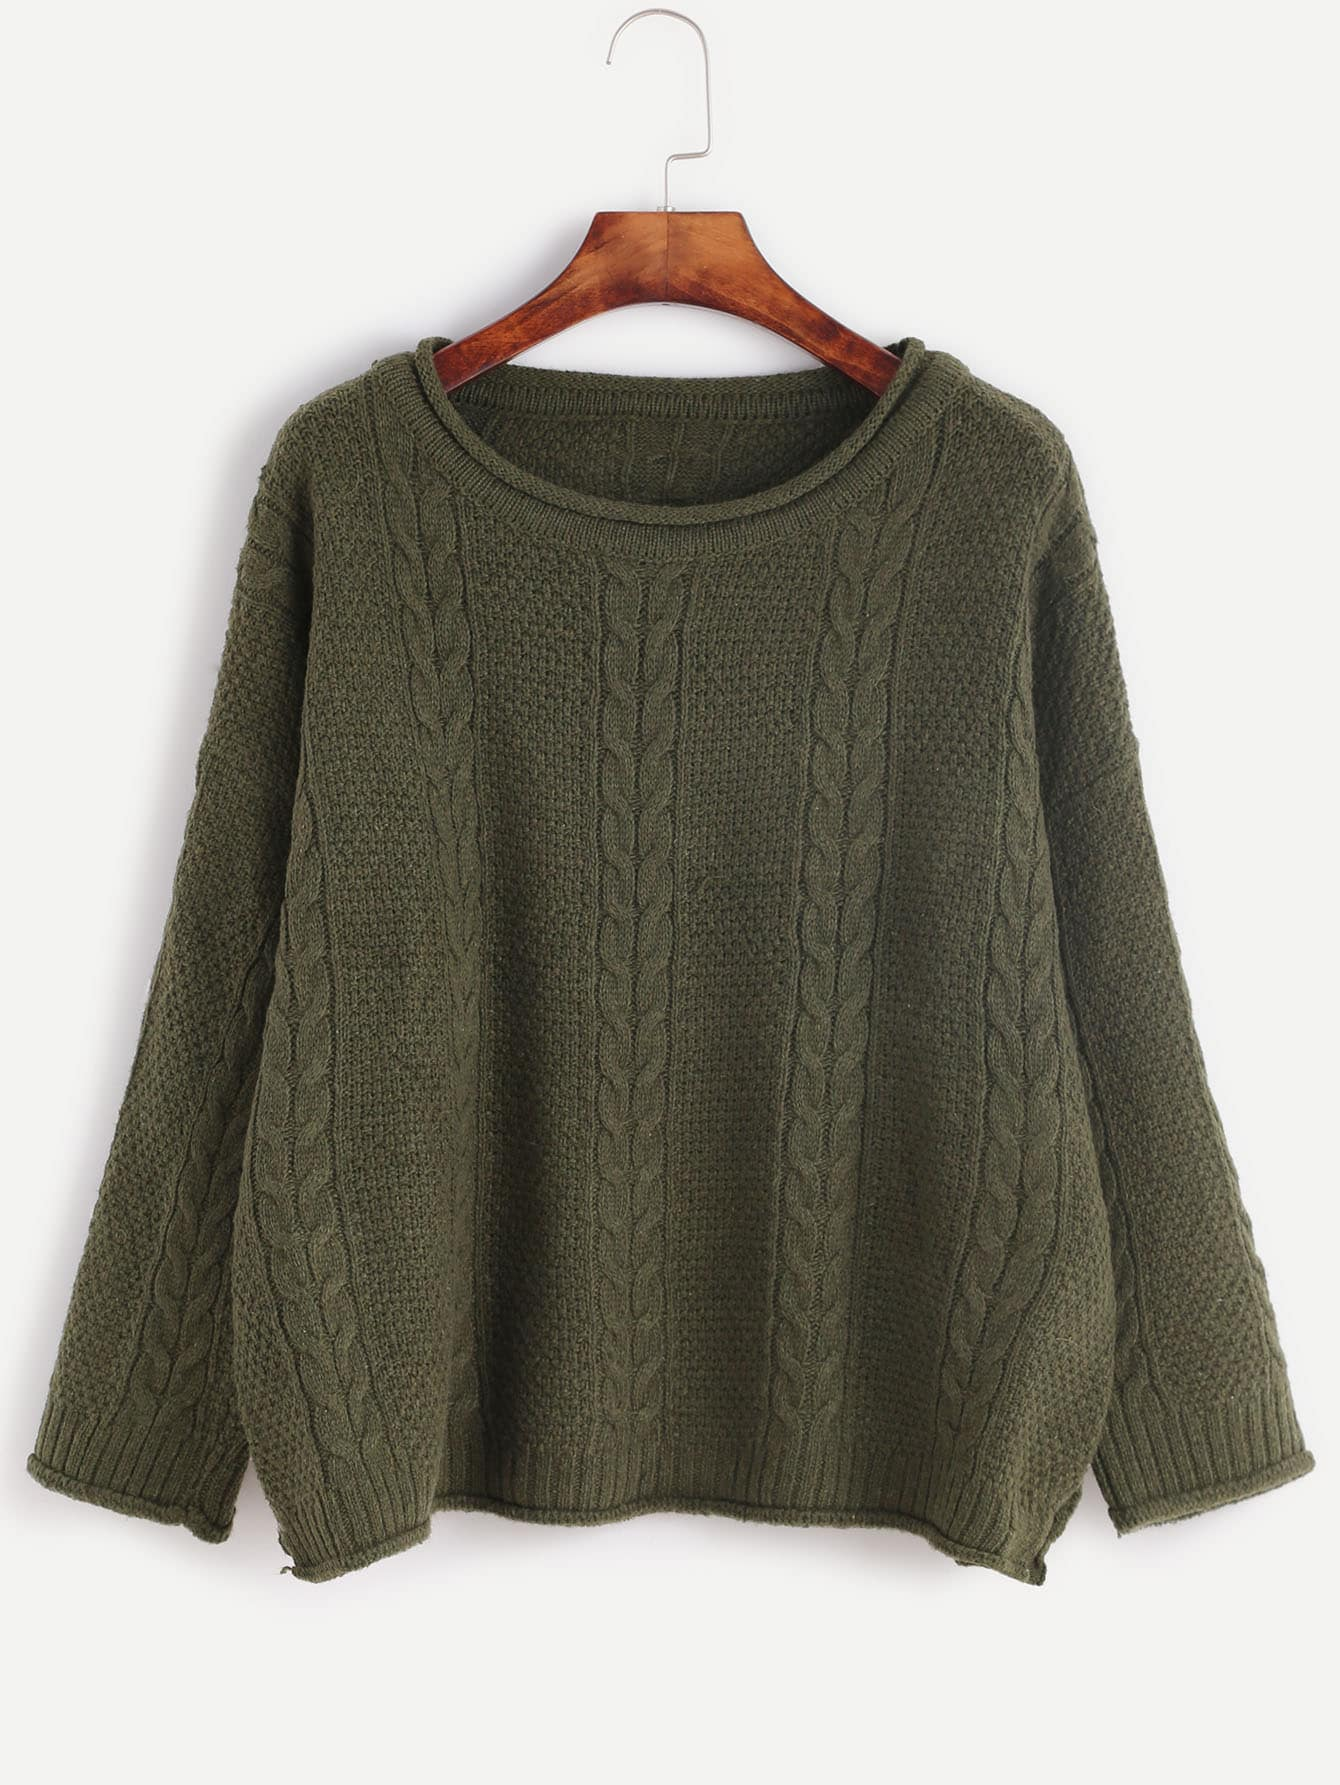 Dark Green Drop Shoulder Cable Knit SweaterDark Green Drop Shoulder Cable Knit Sweater<br><br>color: Green<br>size: one-size